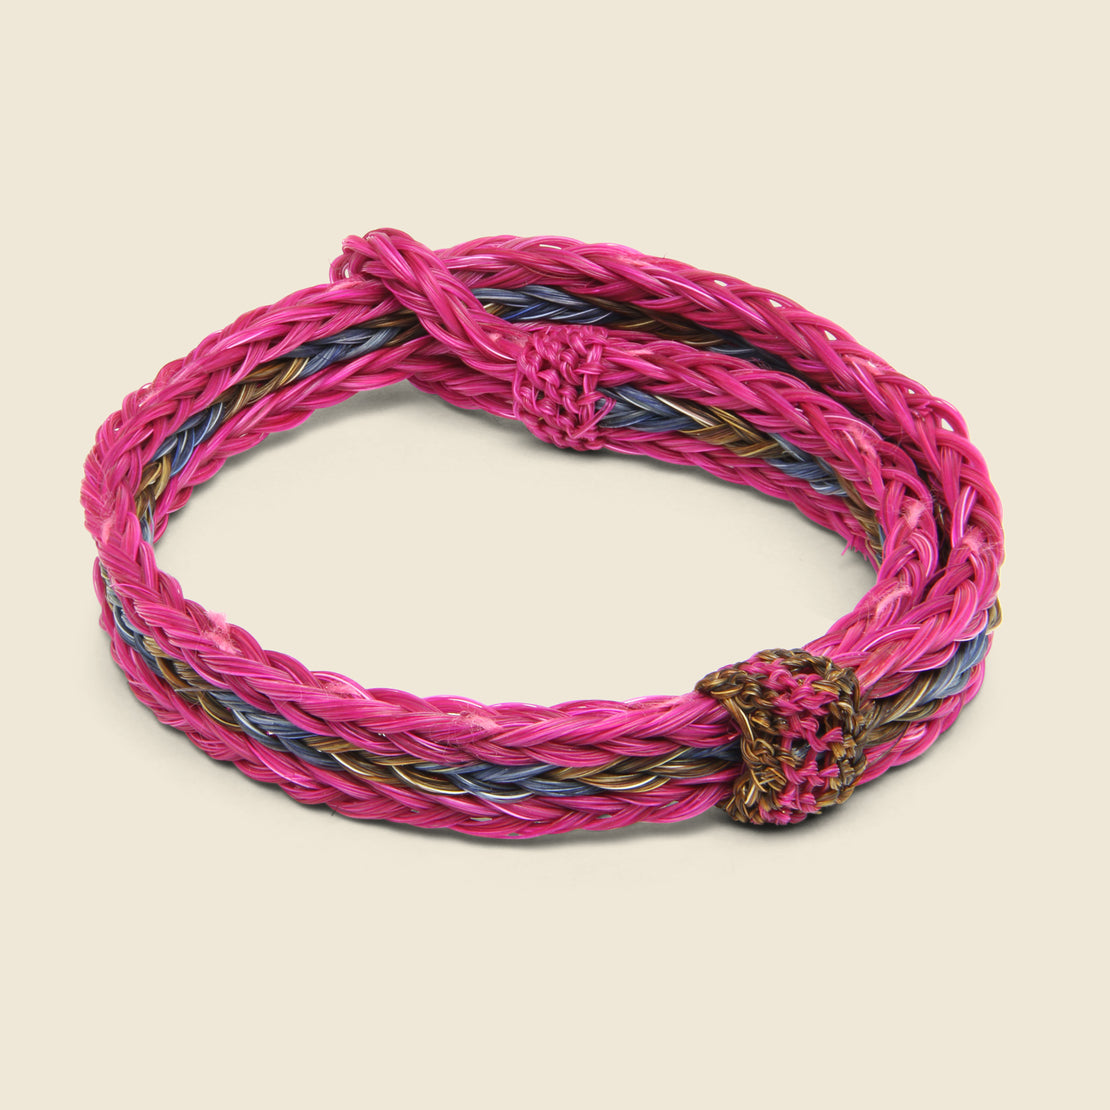 Chamula Braided Horsehair Bracelet - Pink